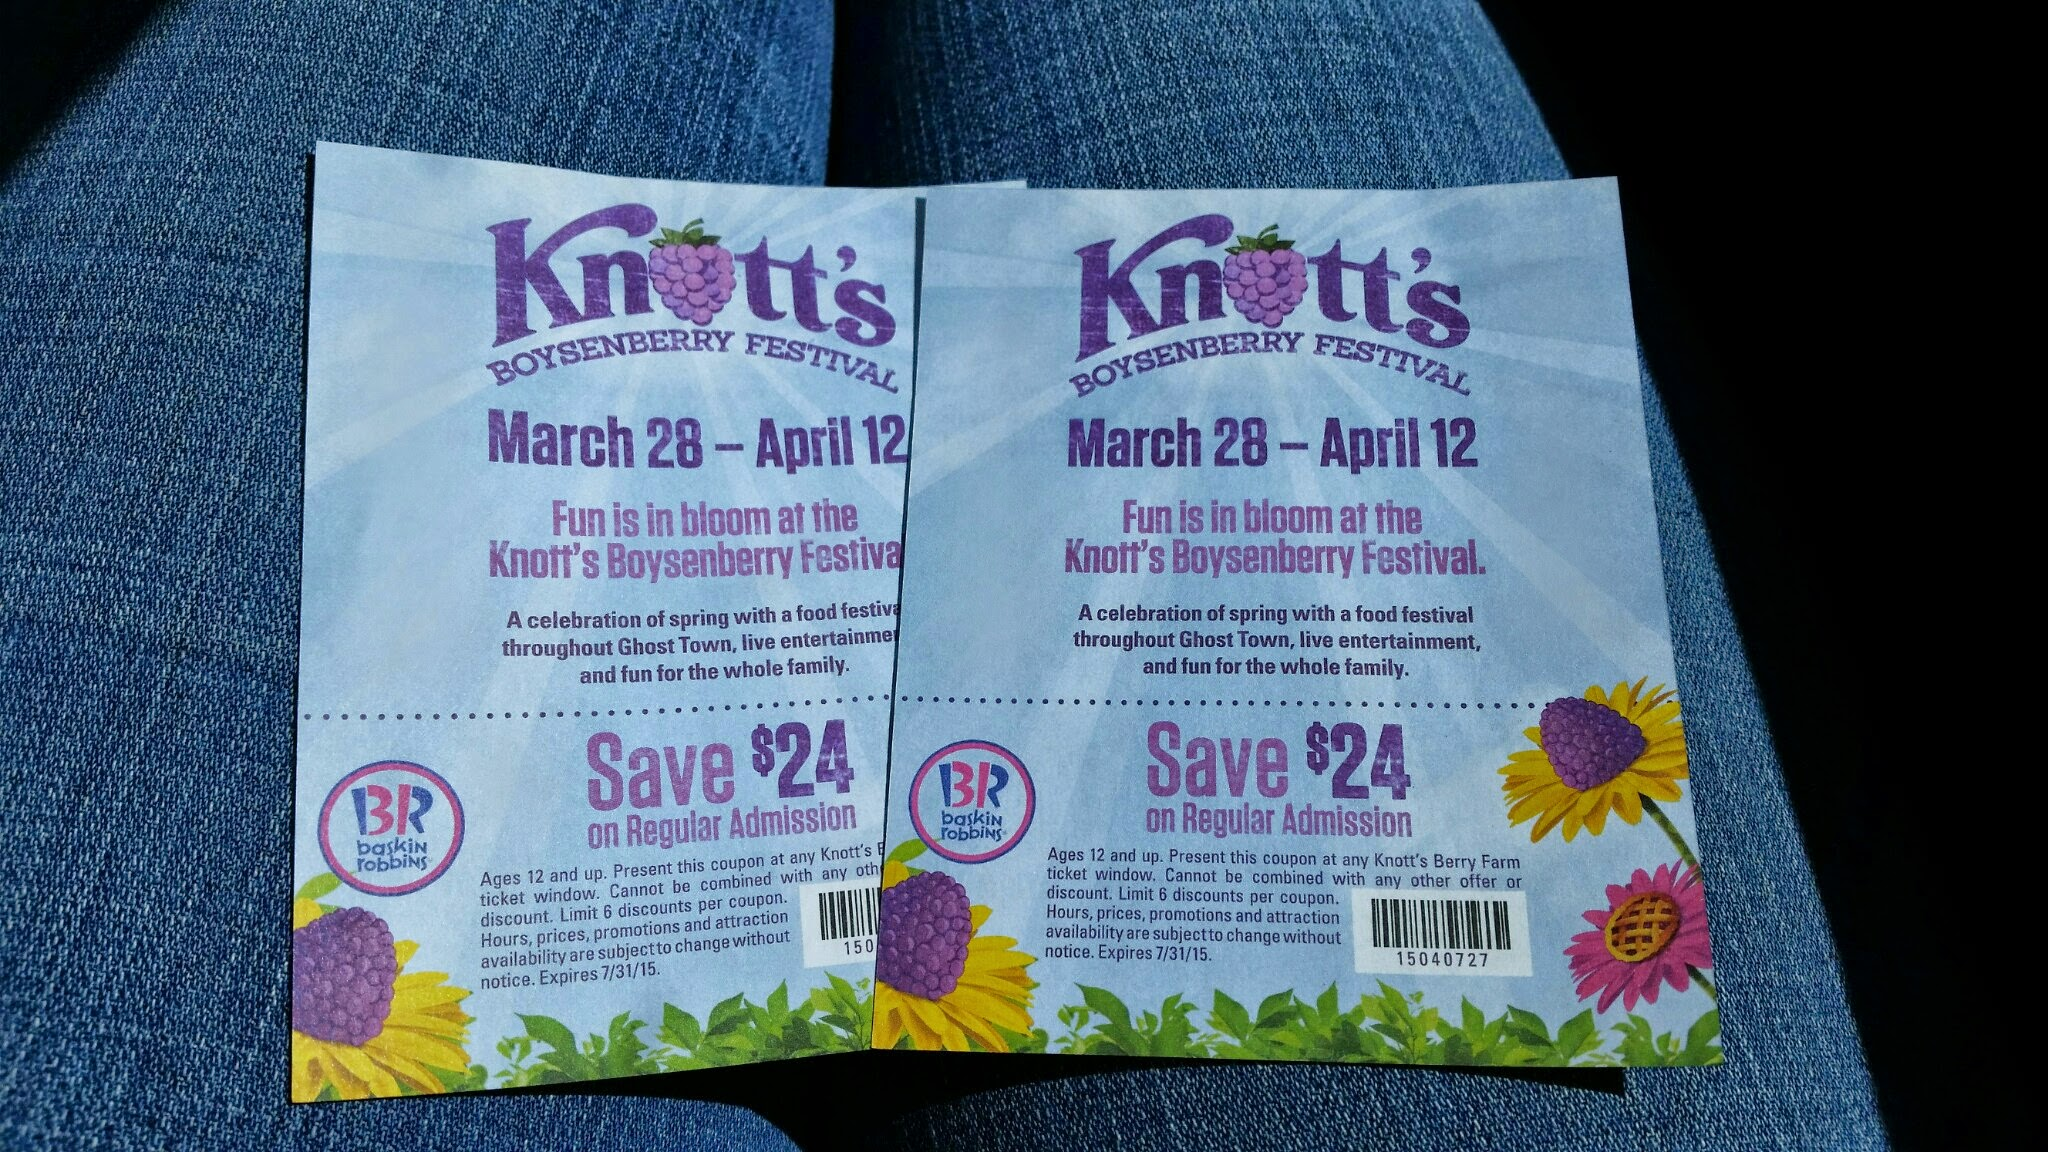 photograph relating to Knotts Berry Farm Printable Coupons identified as Knotts Berry Farm Low cost Tickets against Baskin Robbins 7